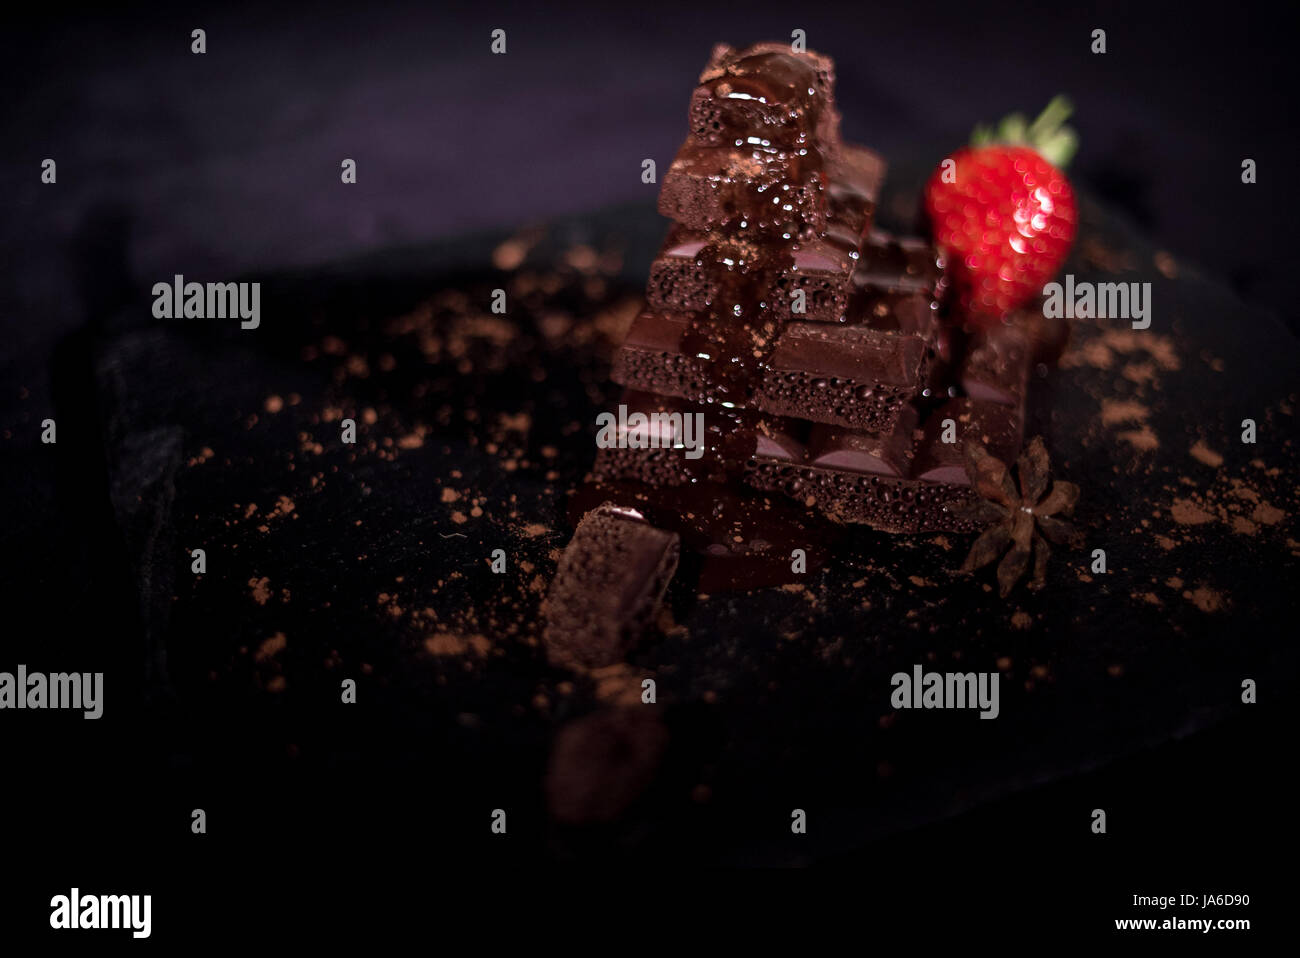 One red straberry on a dark  chocolate - Stock Image